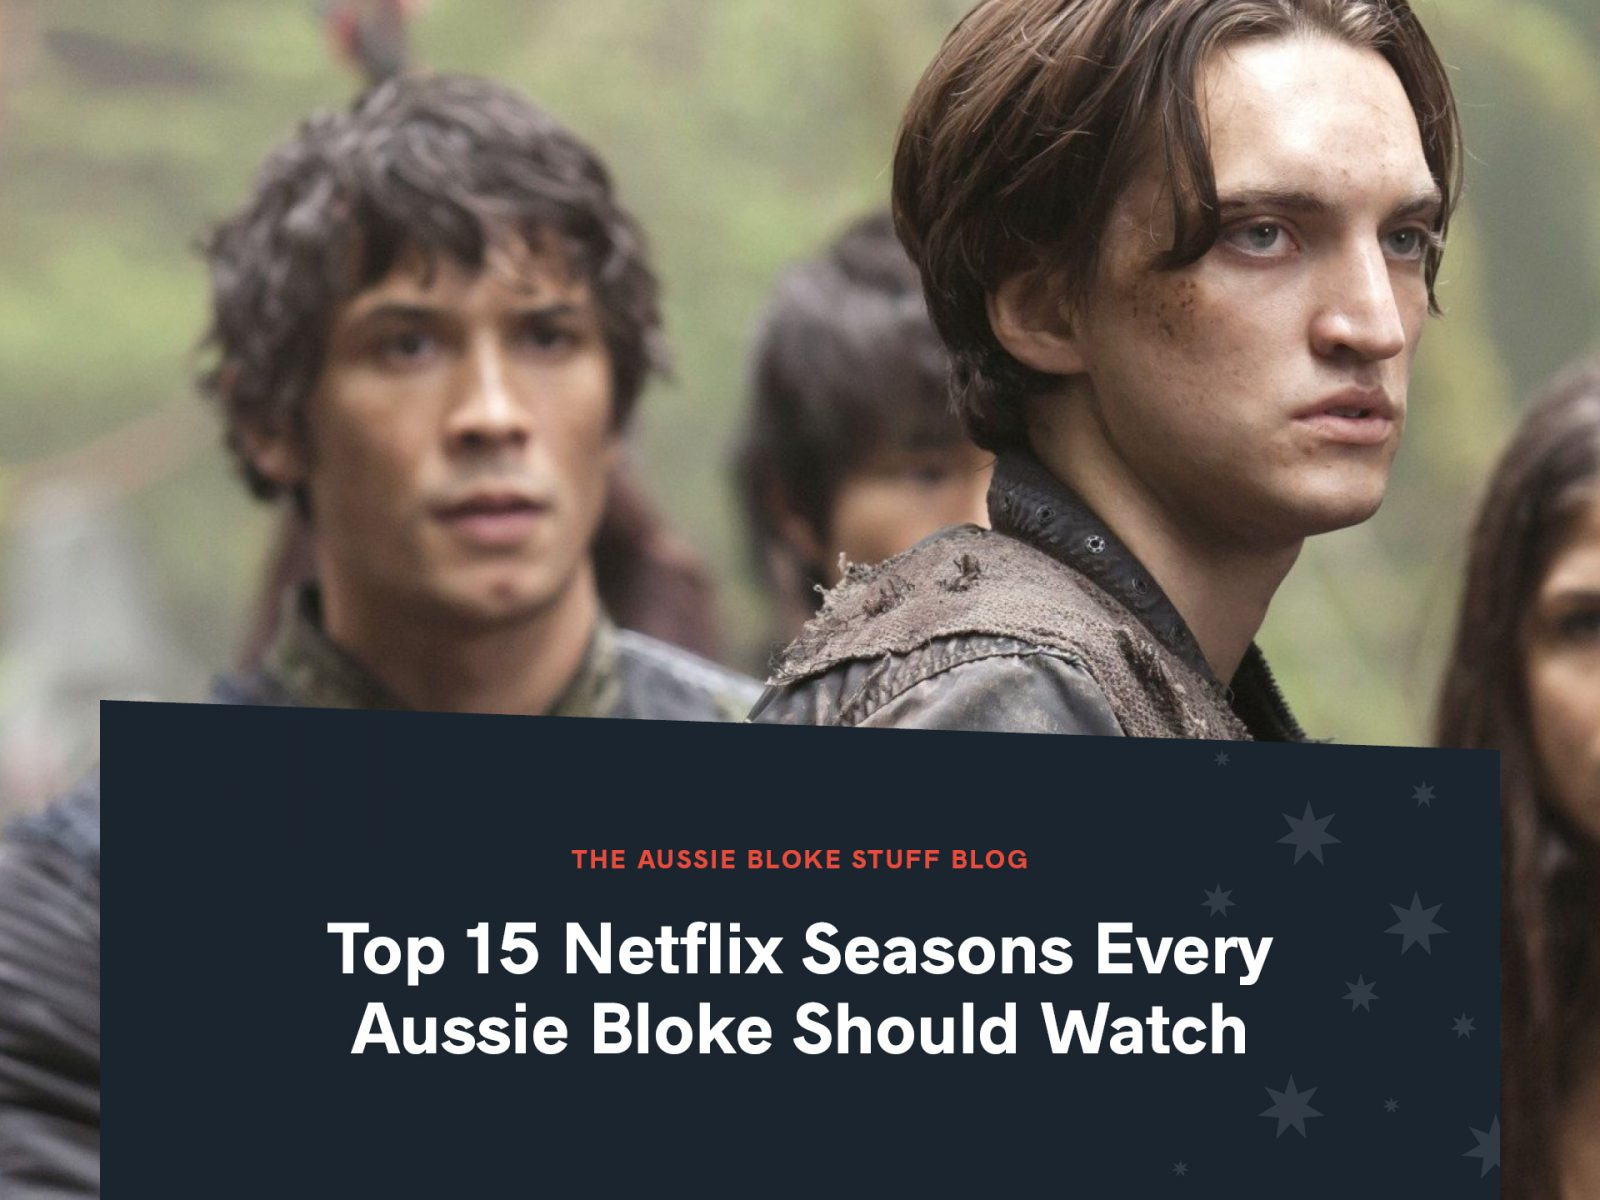 Top 15 Netflix Seasons Every Aussie Bloke Should Watch